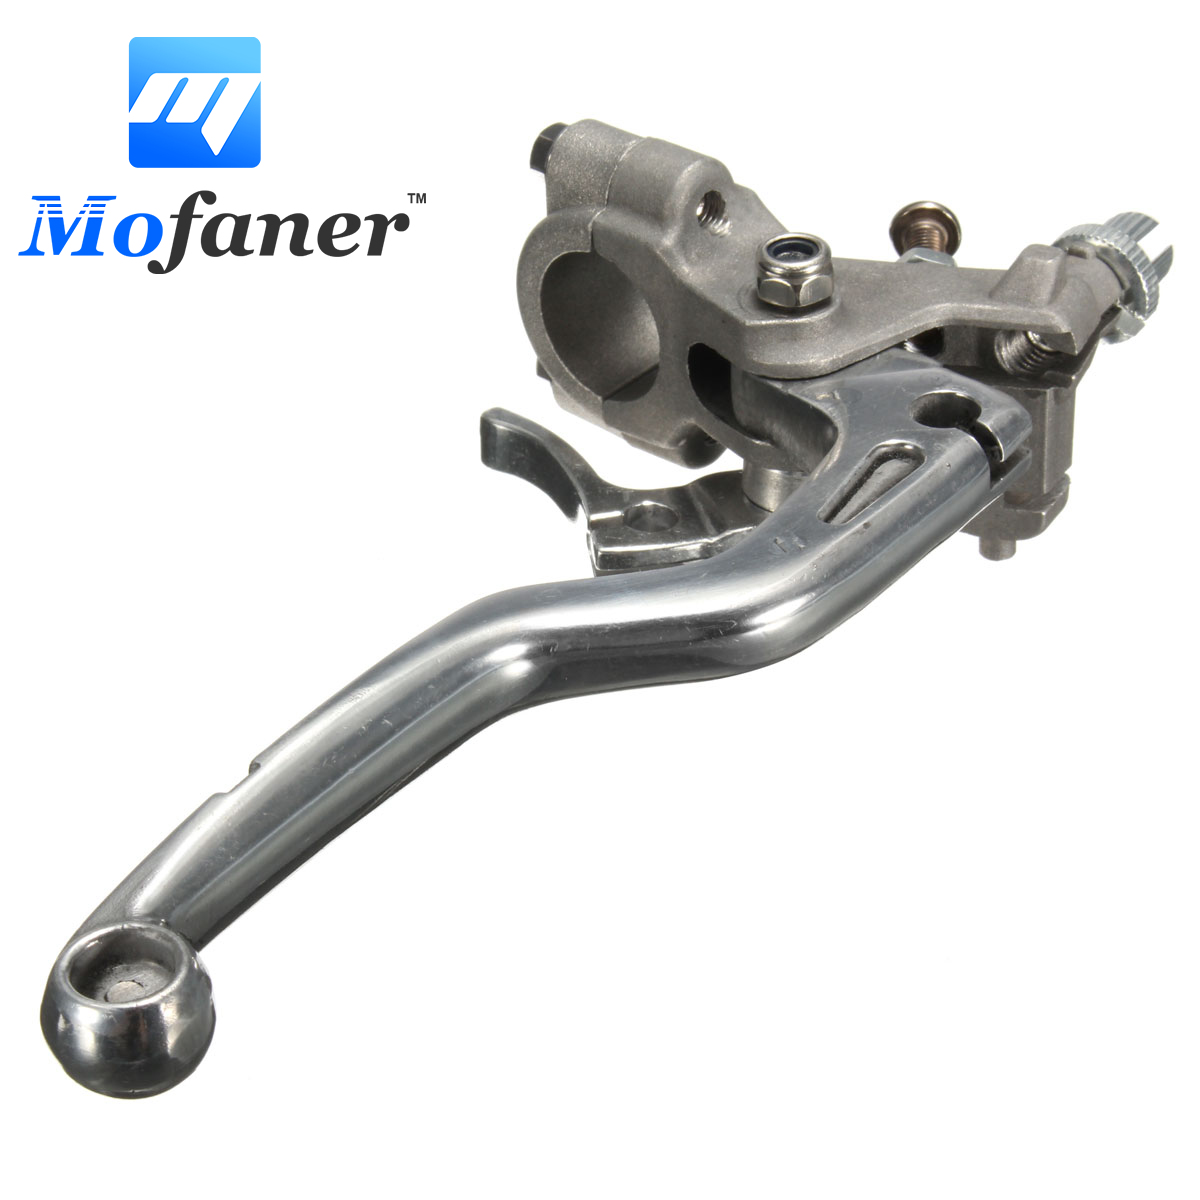 Front Brake Lever Clutch Master Cylinder Handelbar For HONDA CR125R 250R CRF250R 450R CRF